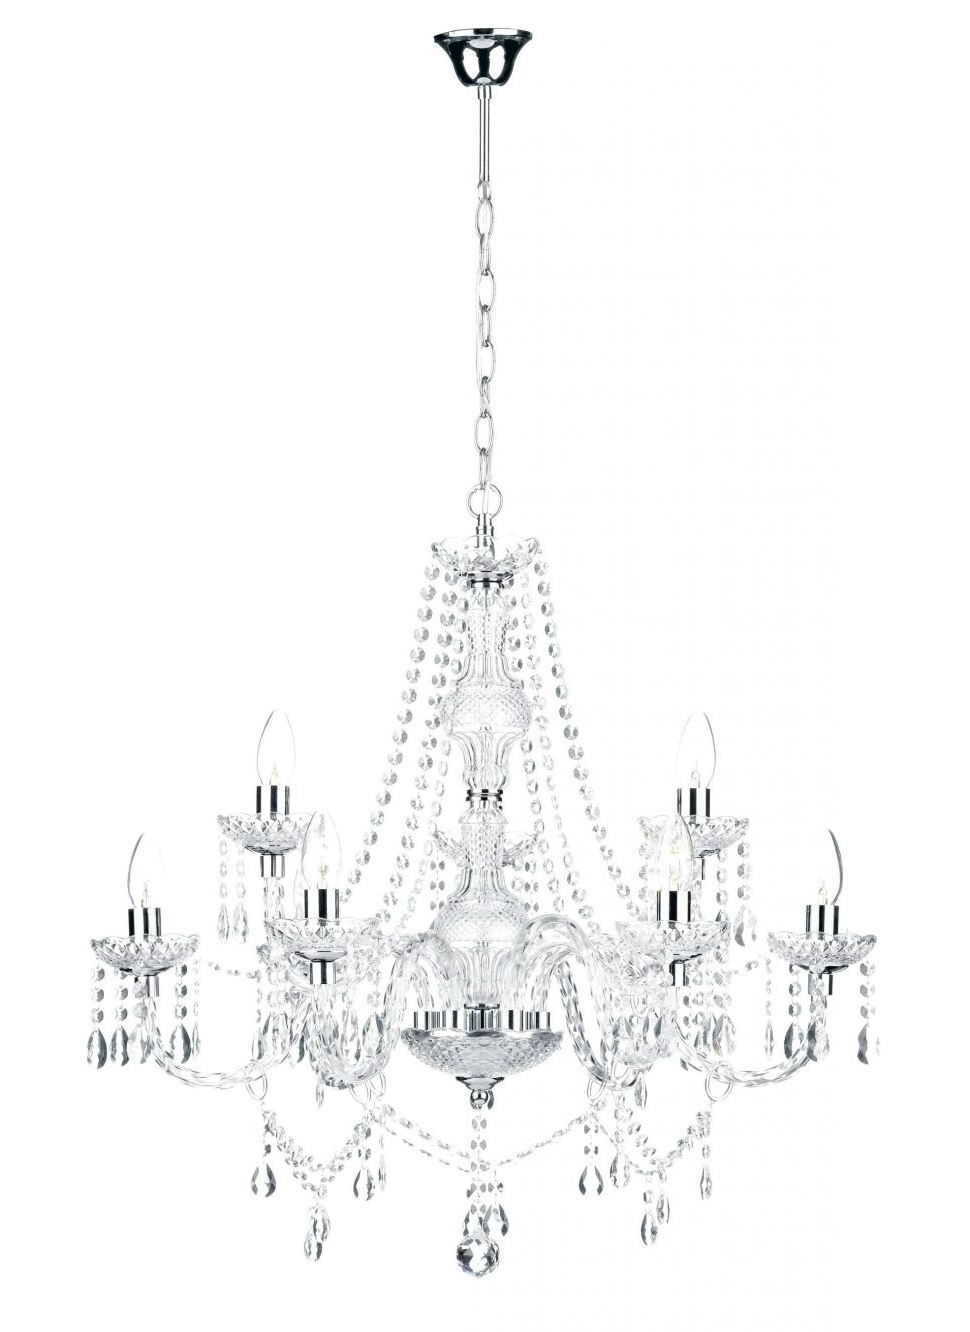 Displaying Gallery Of Lead Crystal Chandeliers View Of Photos - Schonbek chandelier replacement crystals